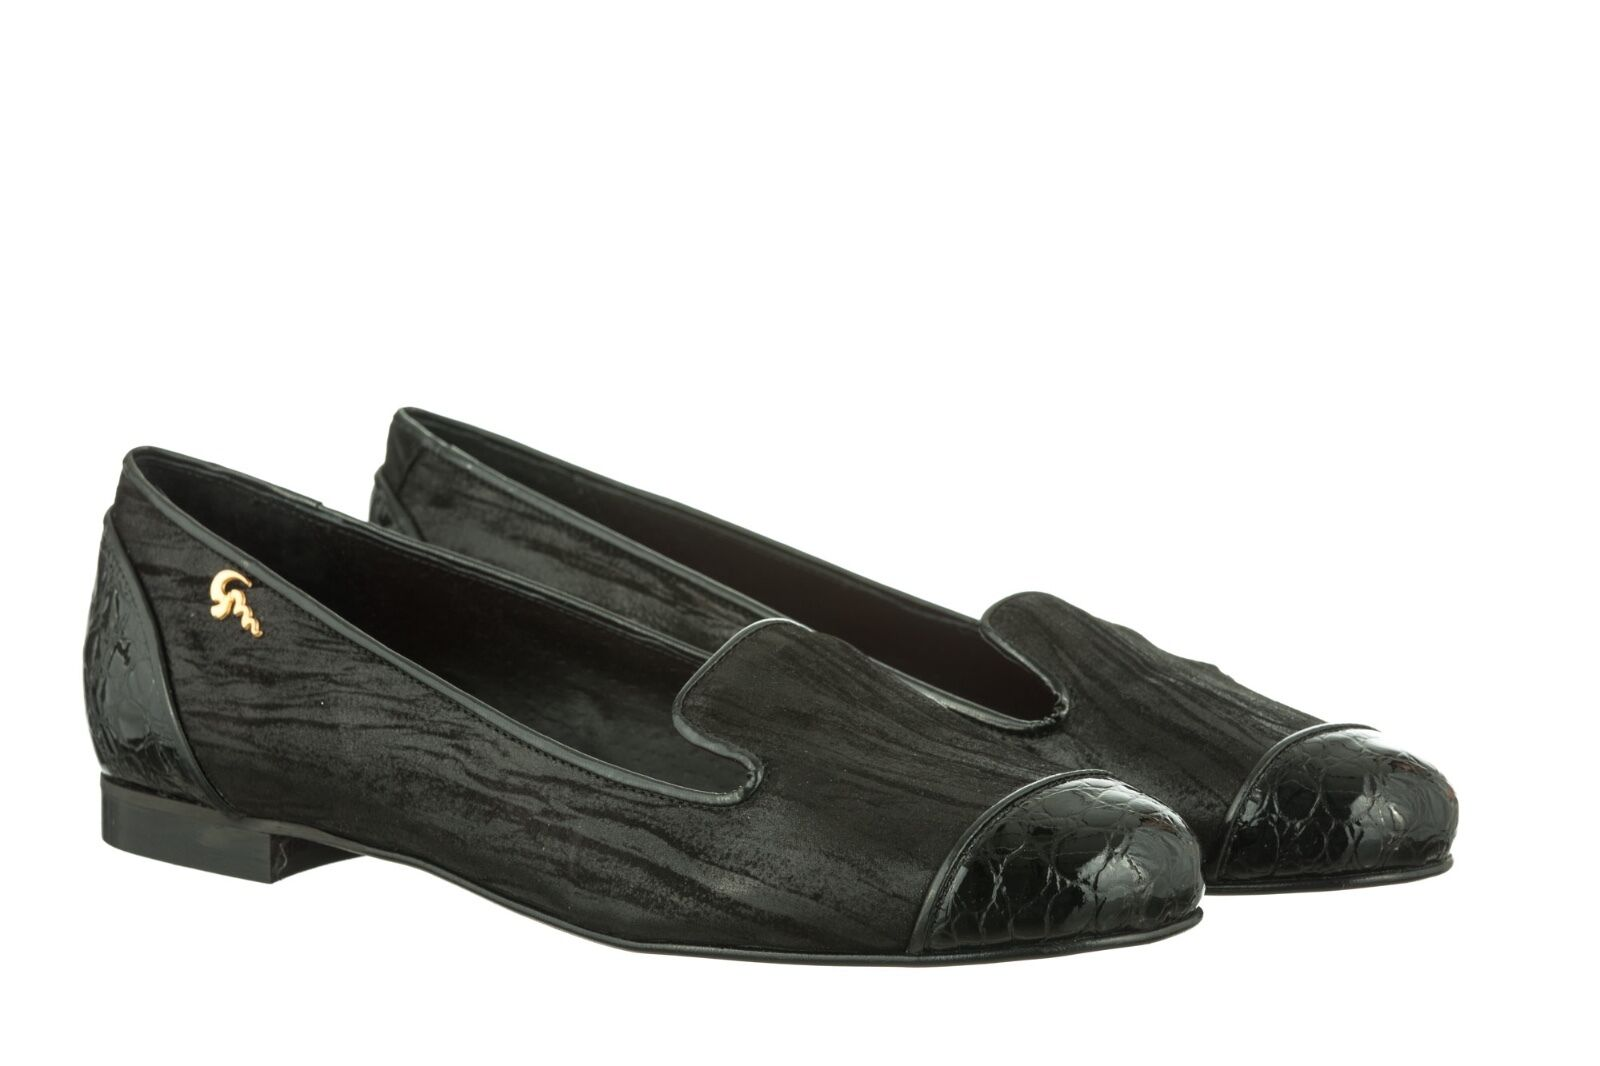 MORI MADE IN ITALY SLIP ON FLATS chaussures chaussures BALLERINA LEATHER noir noir 43